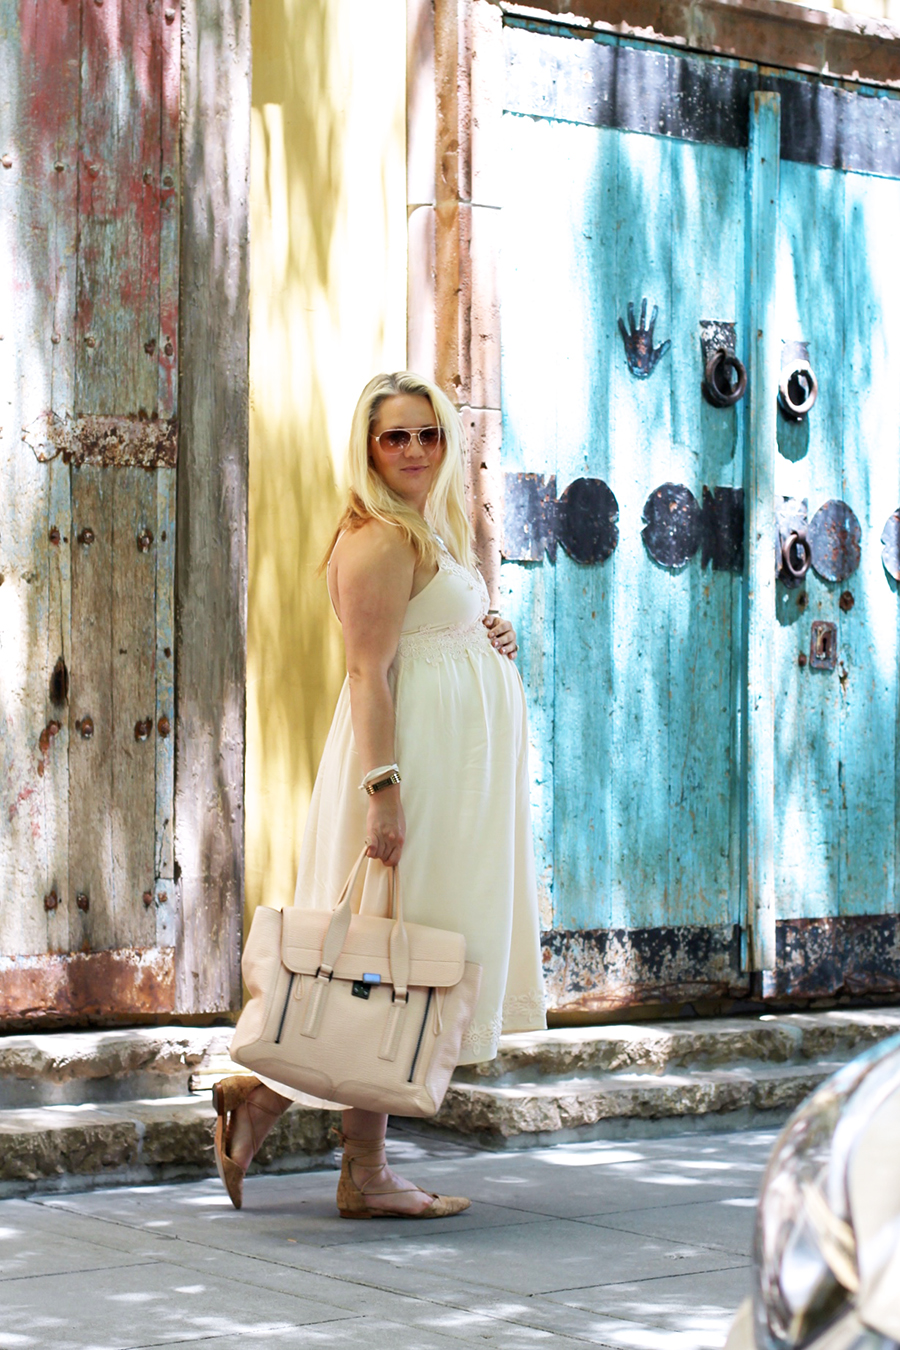 forever-21-lace-dress-maternity-style-outfit-inspiration-pregnancy-style-have-need-want-5